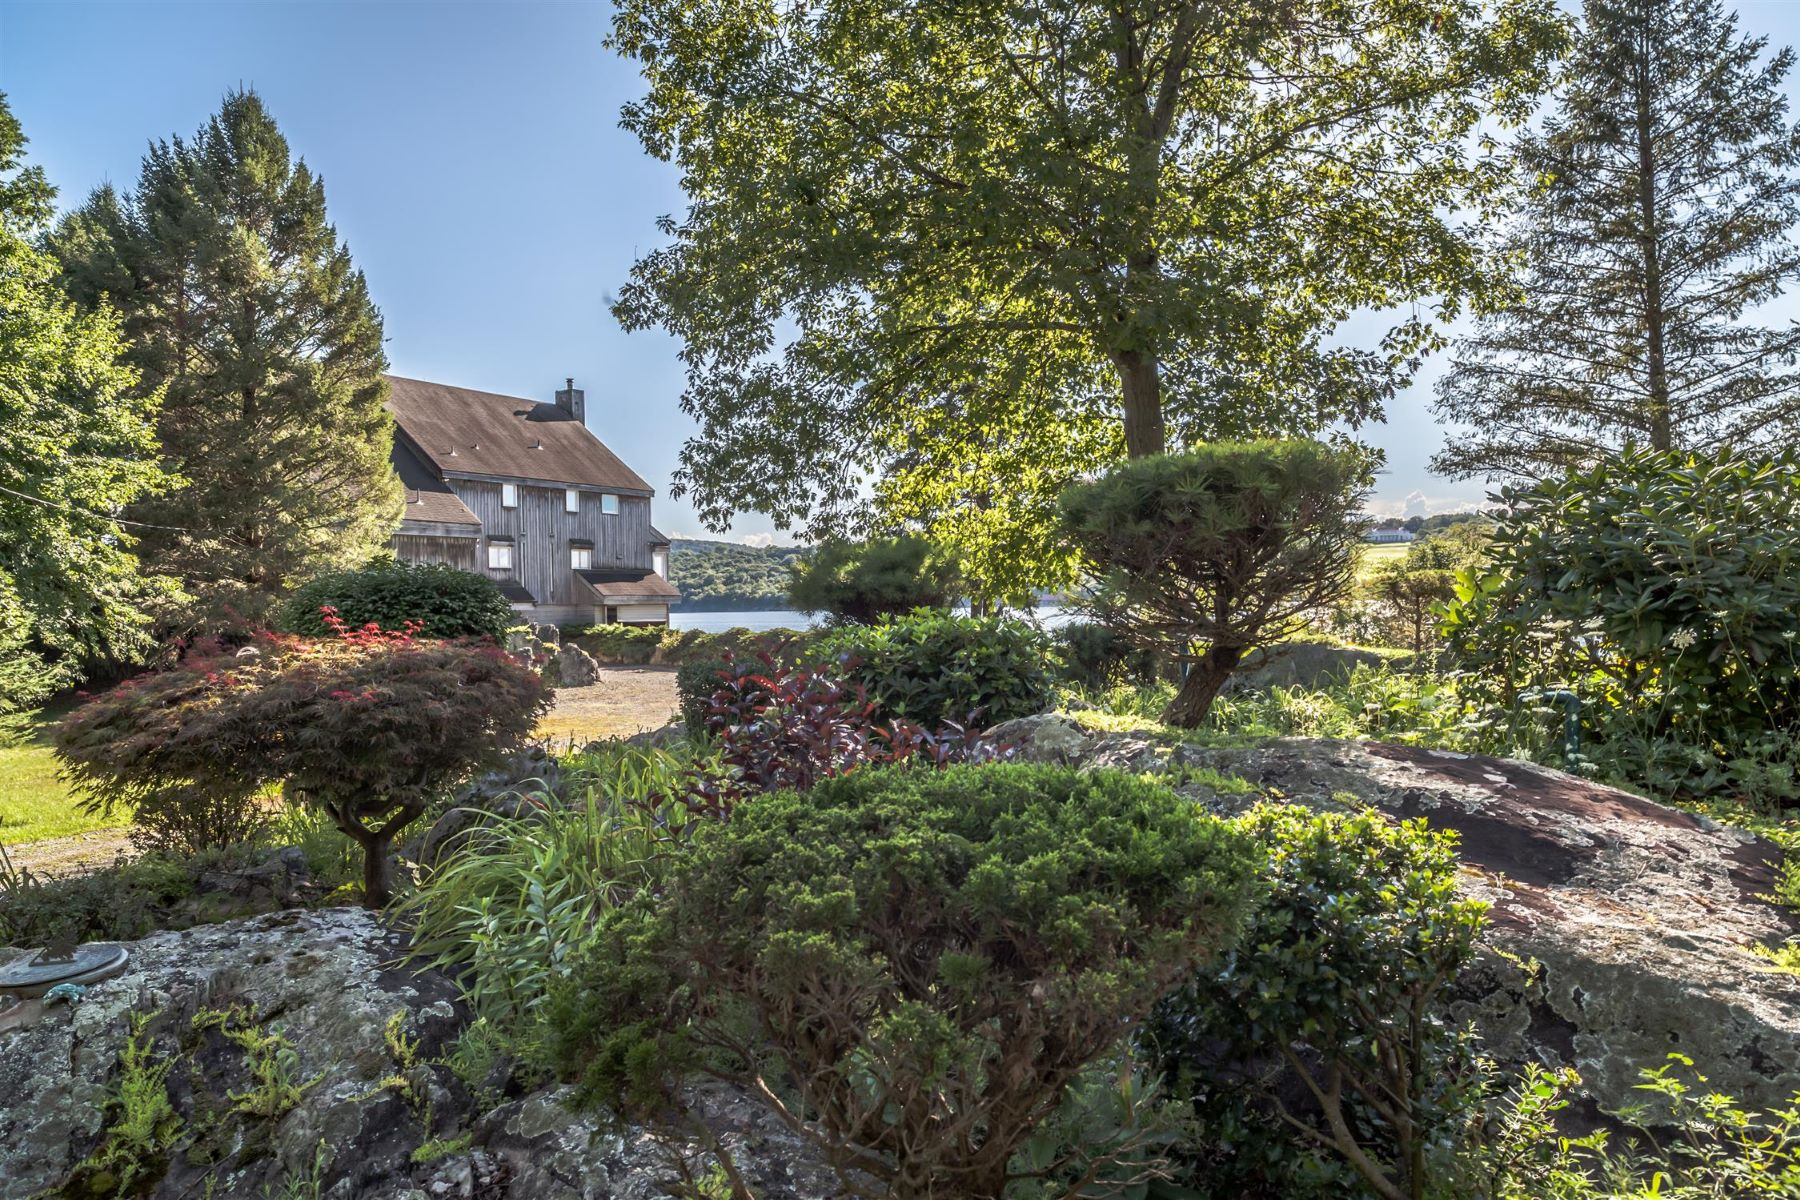 Single Family Home for Sale at Bolles Island on the Hudson River 16 Poppinga Lane Hyde Park, New York 12538 United States